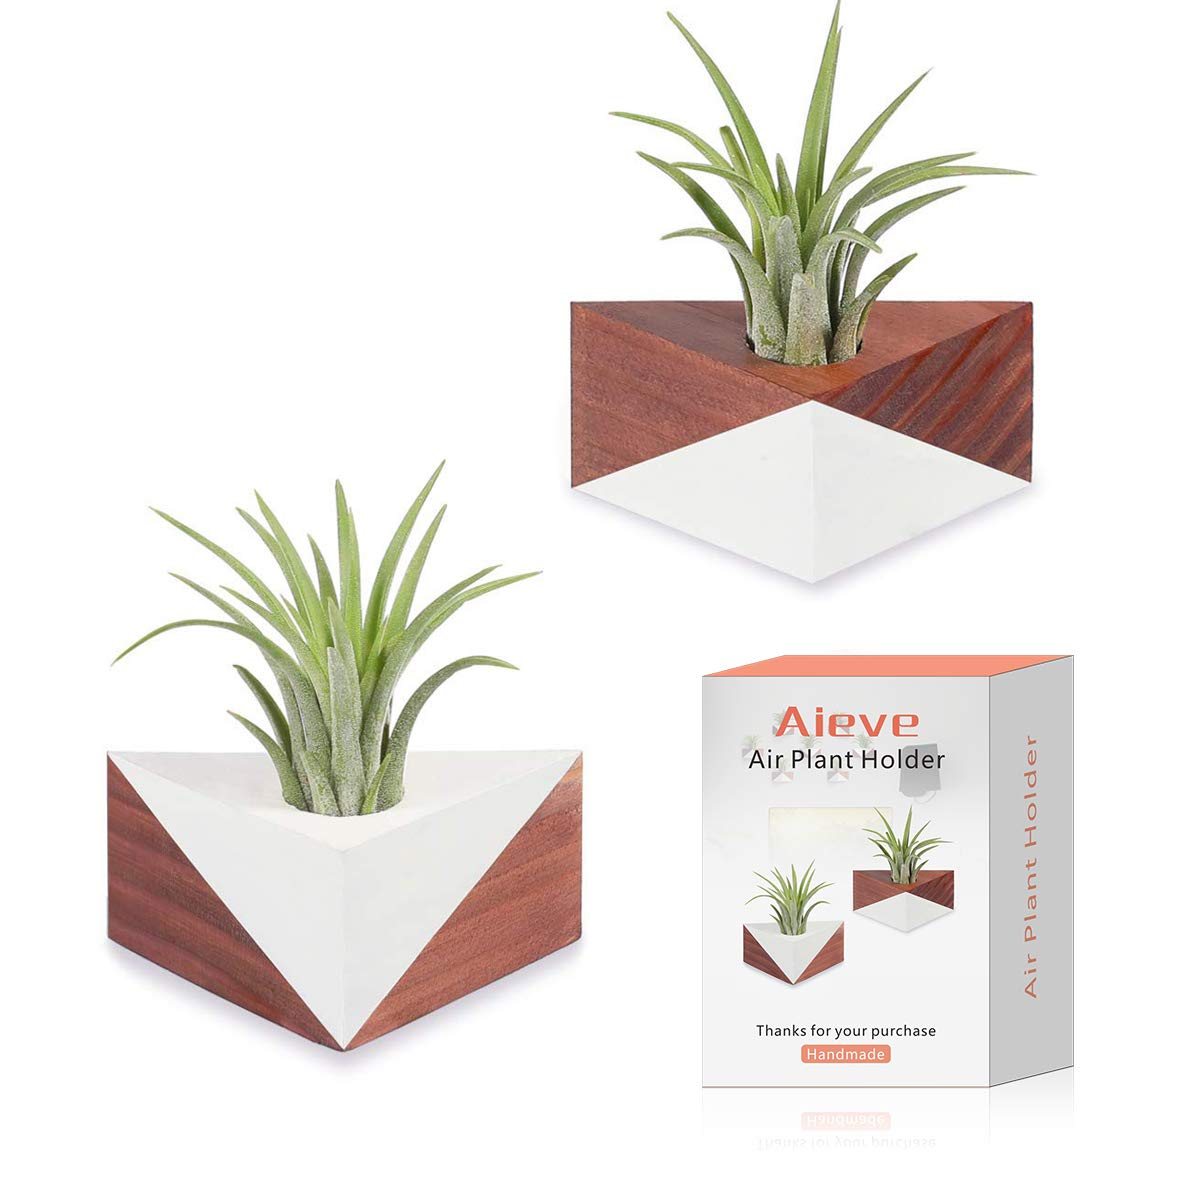 Air Plant Holder,2 Pack Triangle Geometric Air Plant Holders Container Tabletop Stand Vase Pot with Magnet for Hanging Air Plants Small Tillandsia Holder Indoor Wall Home Decor